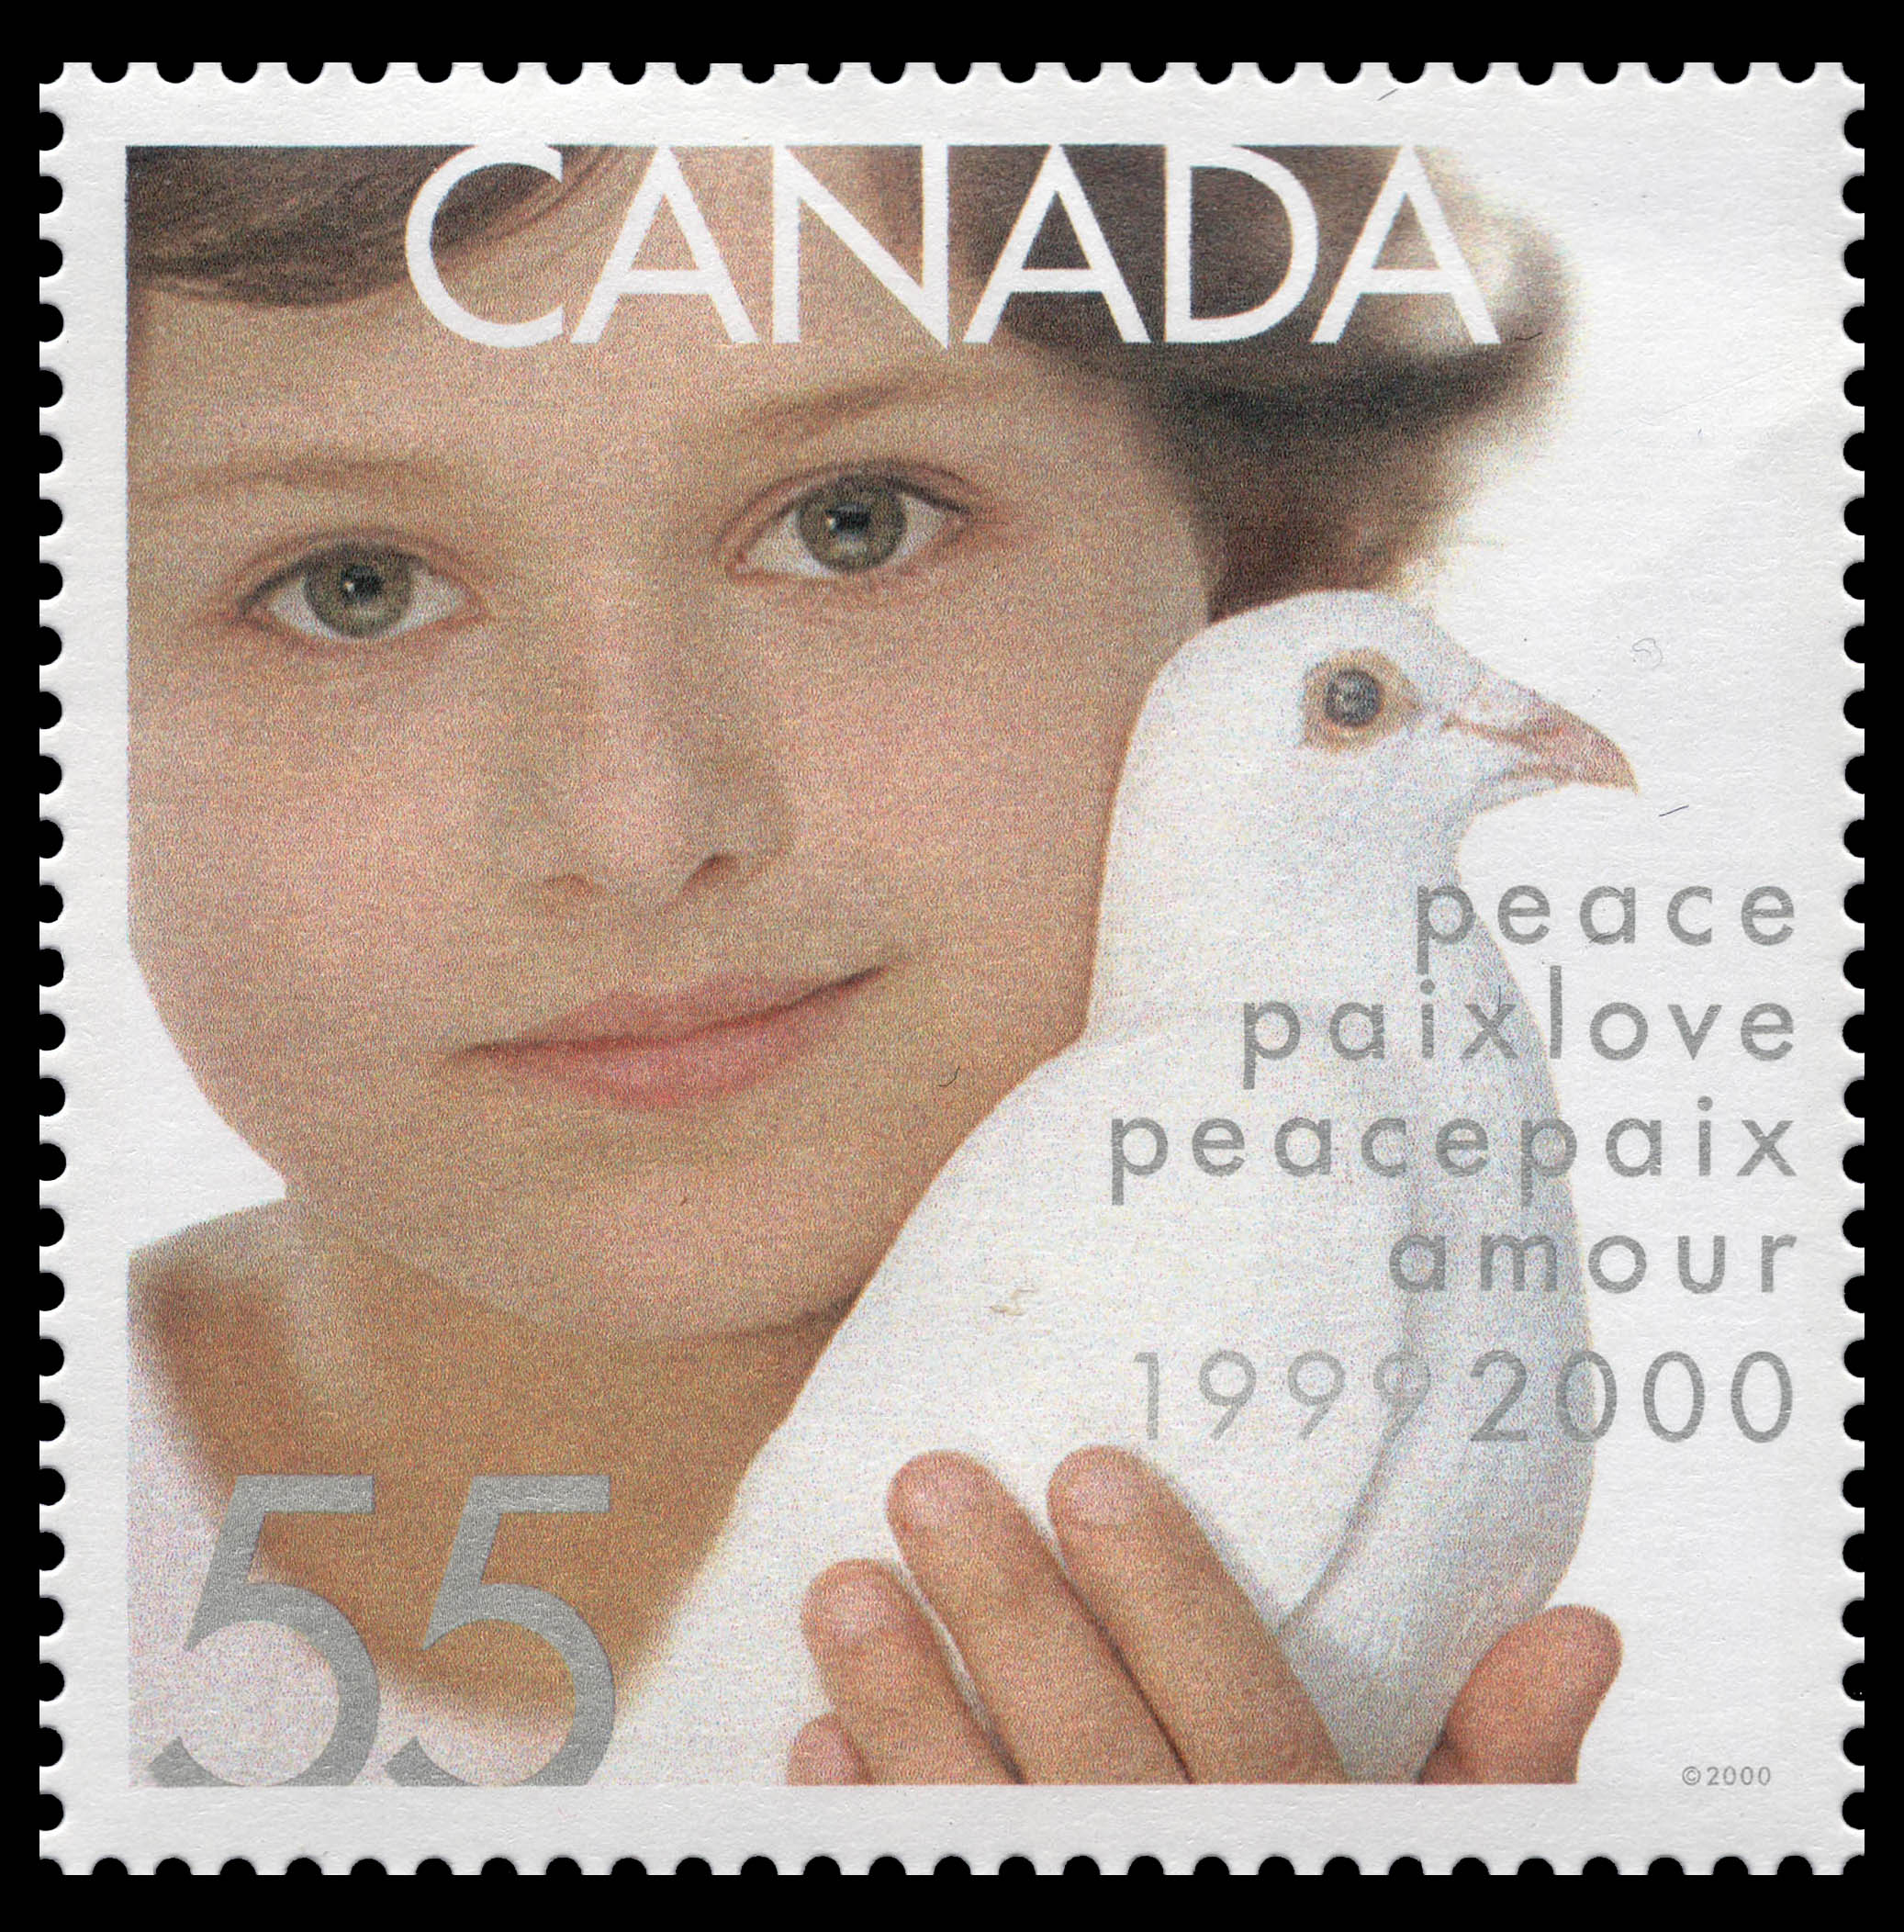 Child Holding Dove - Peace and Love - Millennium Canada Postage Stamp